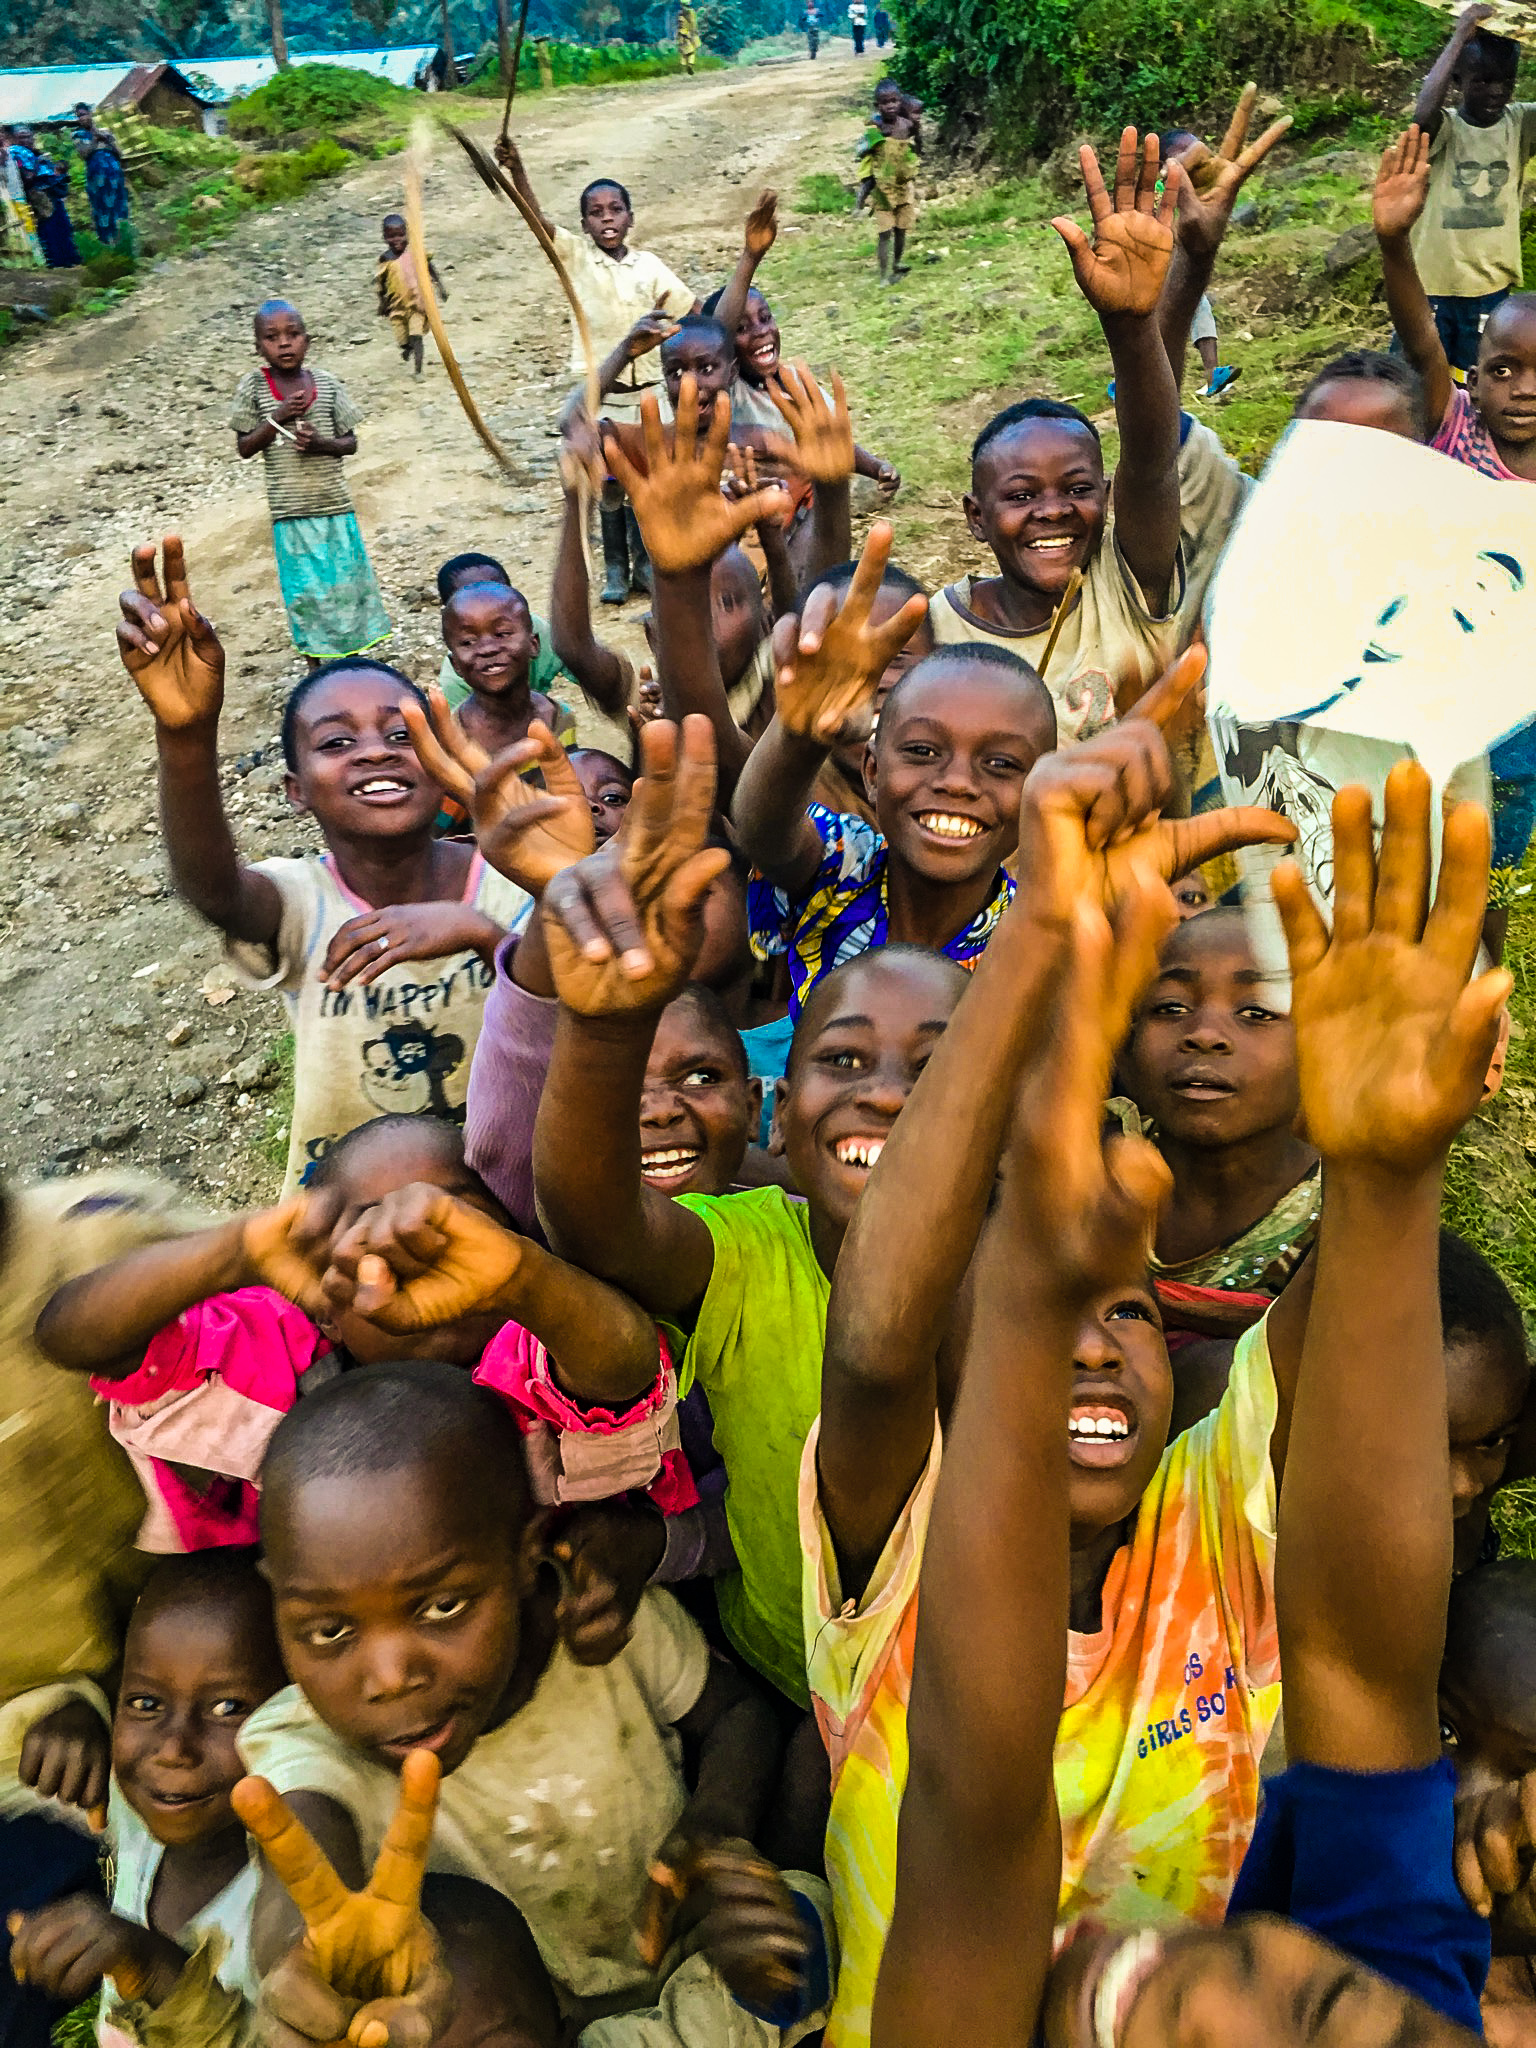 Children from the village in Rumangabo, Congo